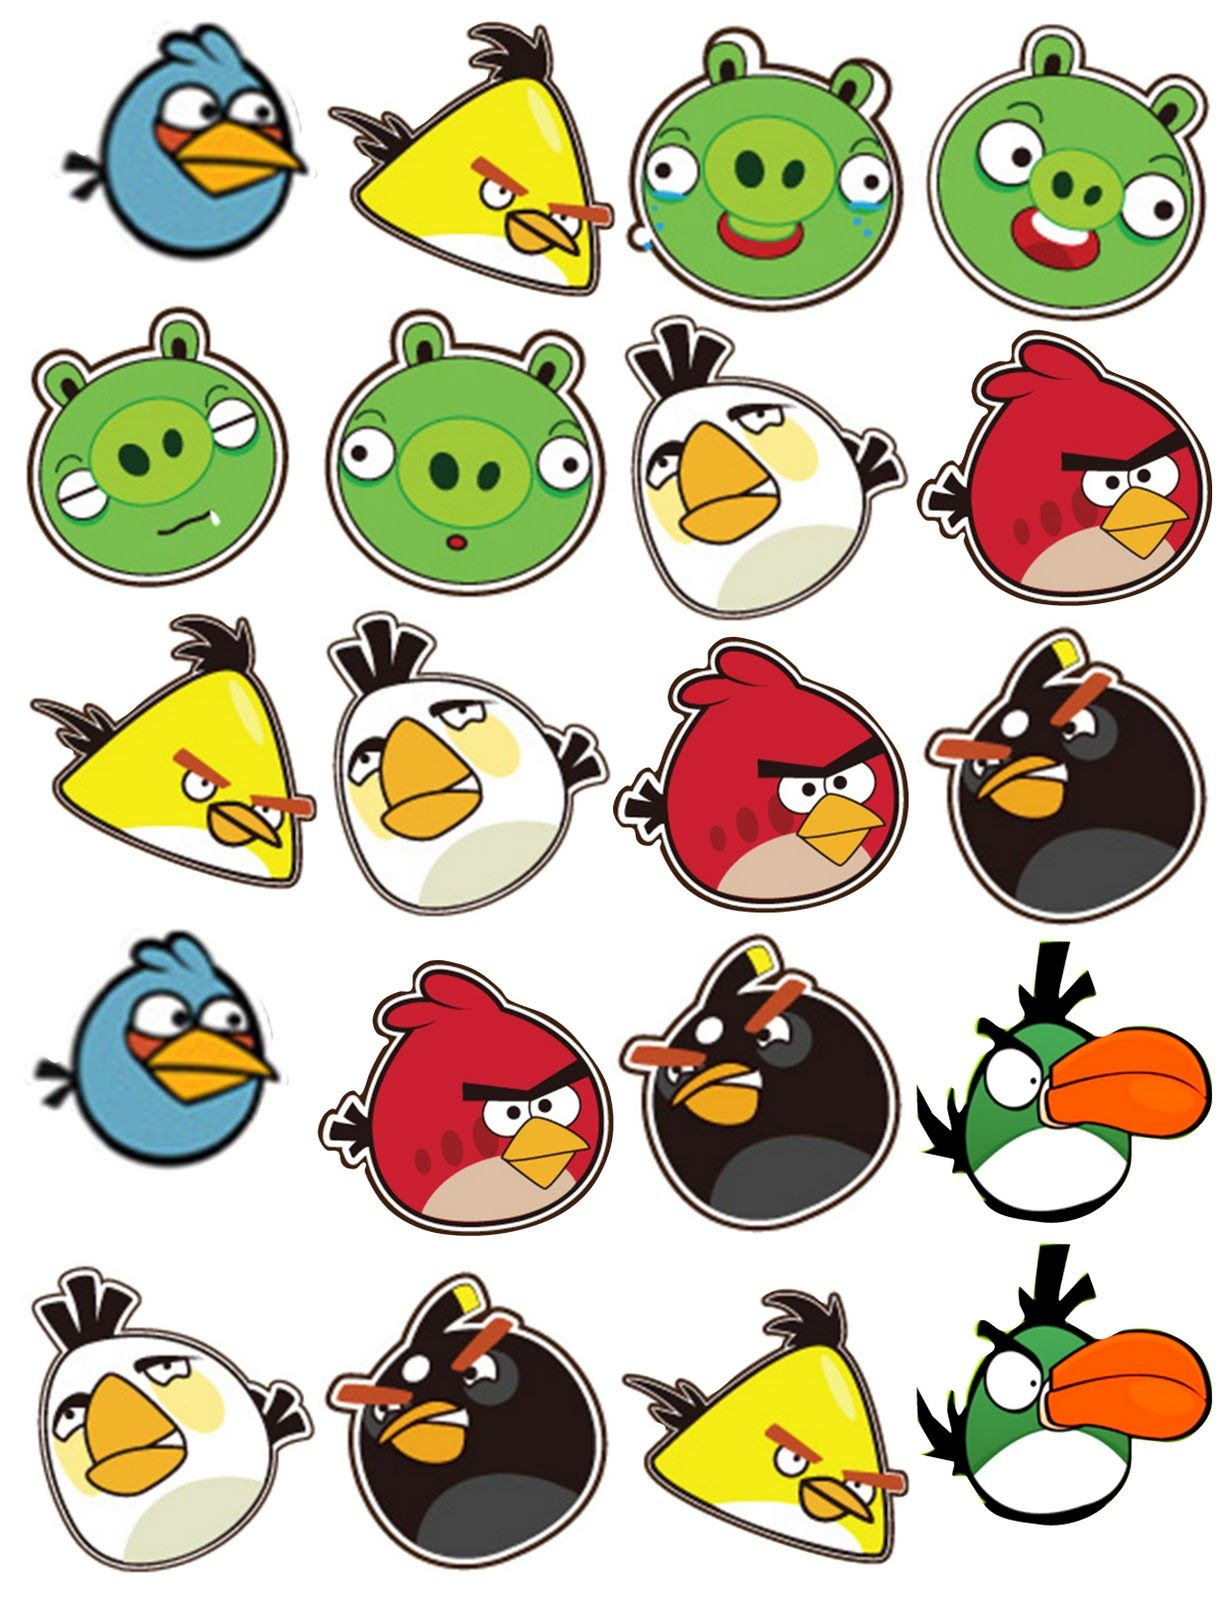 Angry clipart cupcake. Bird can be used